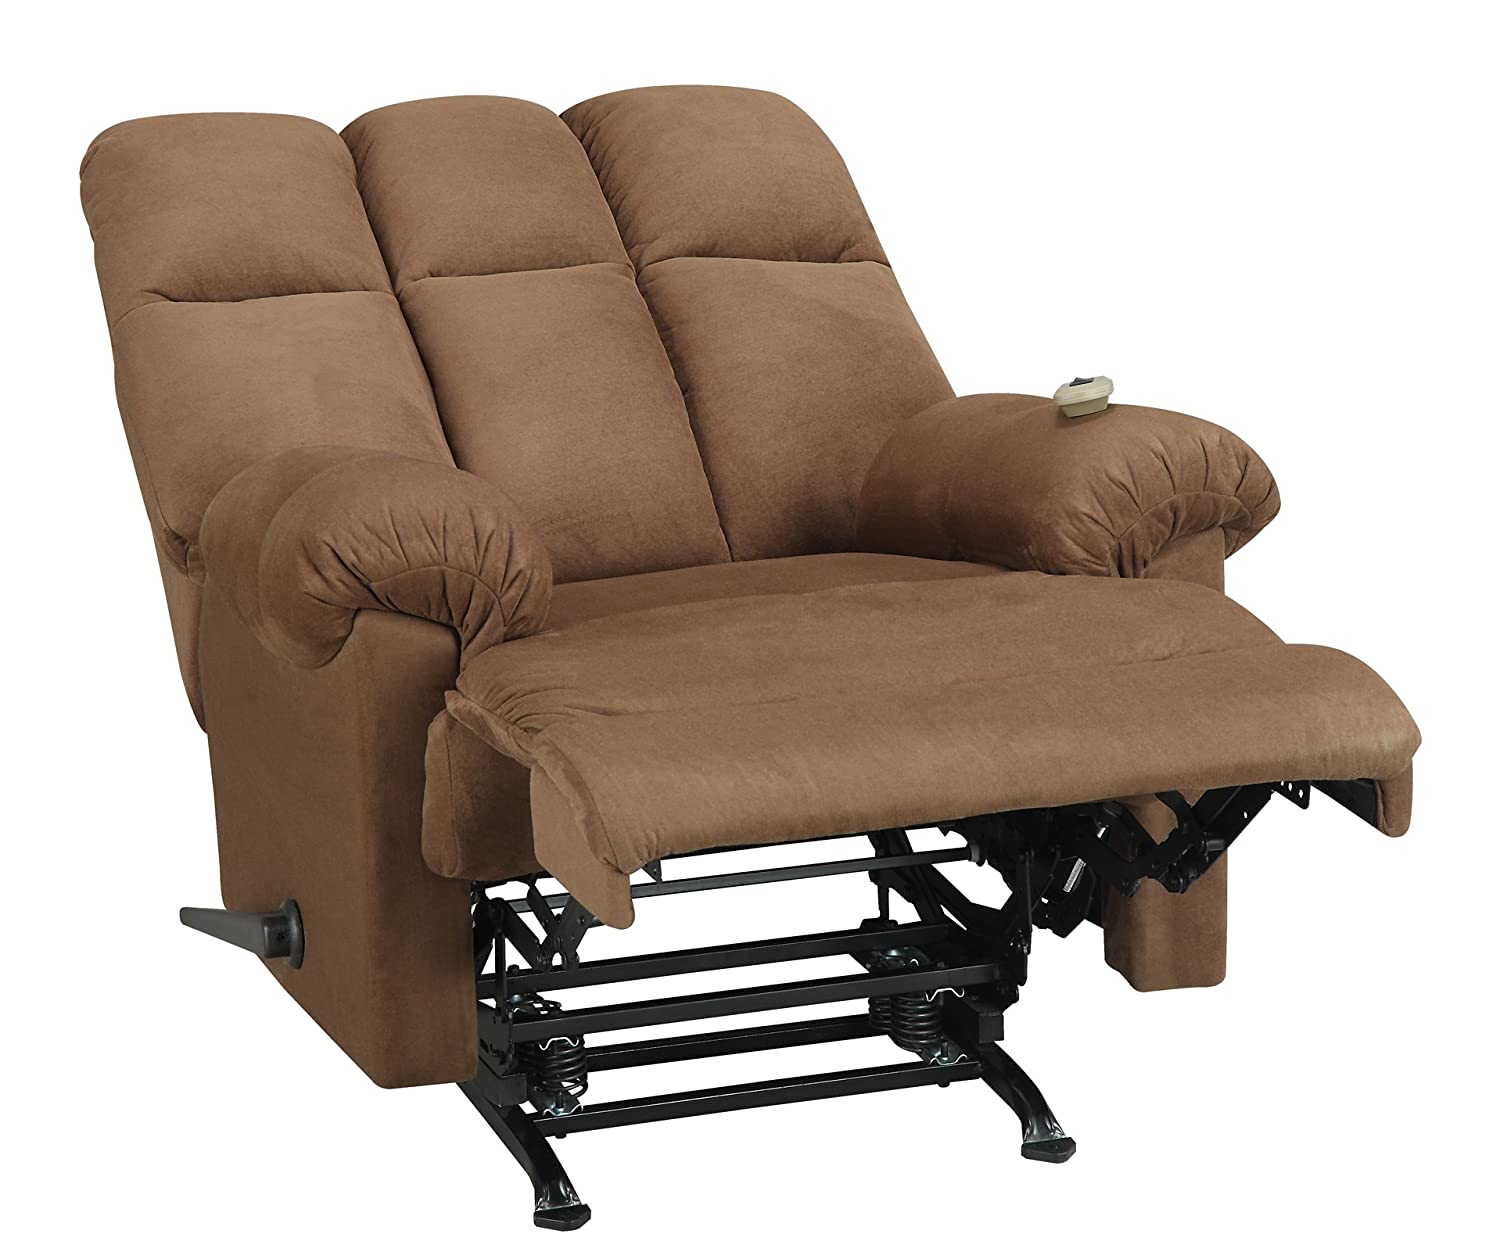 Amazon.com: Dorel Living Padded Dual Massage Recliner, Chocolate: Kitchen U0026  Dining